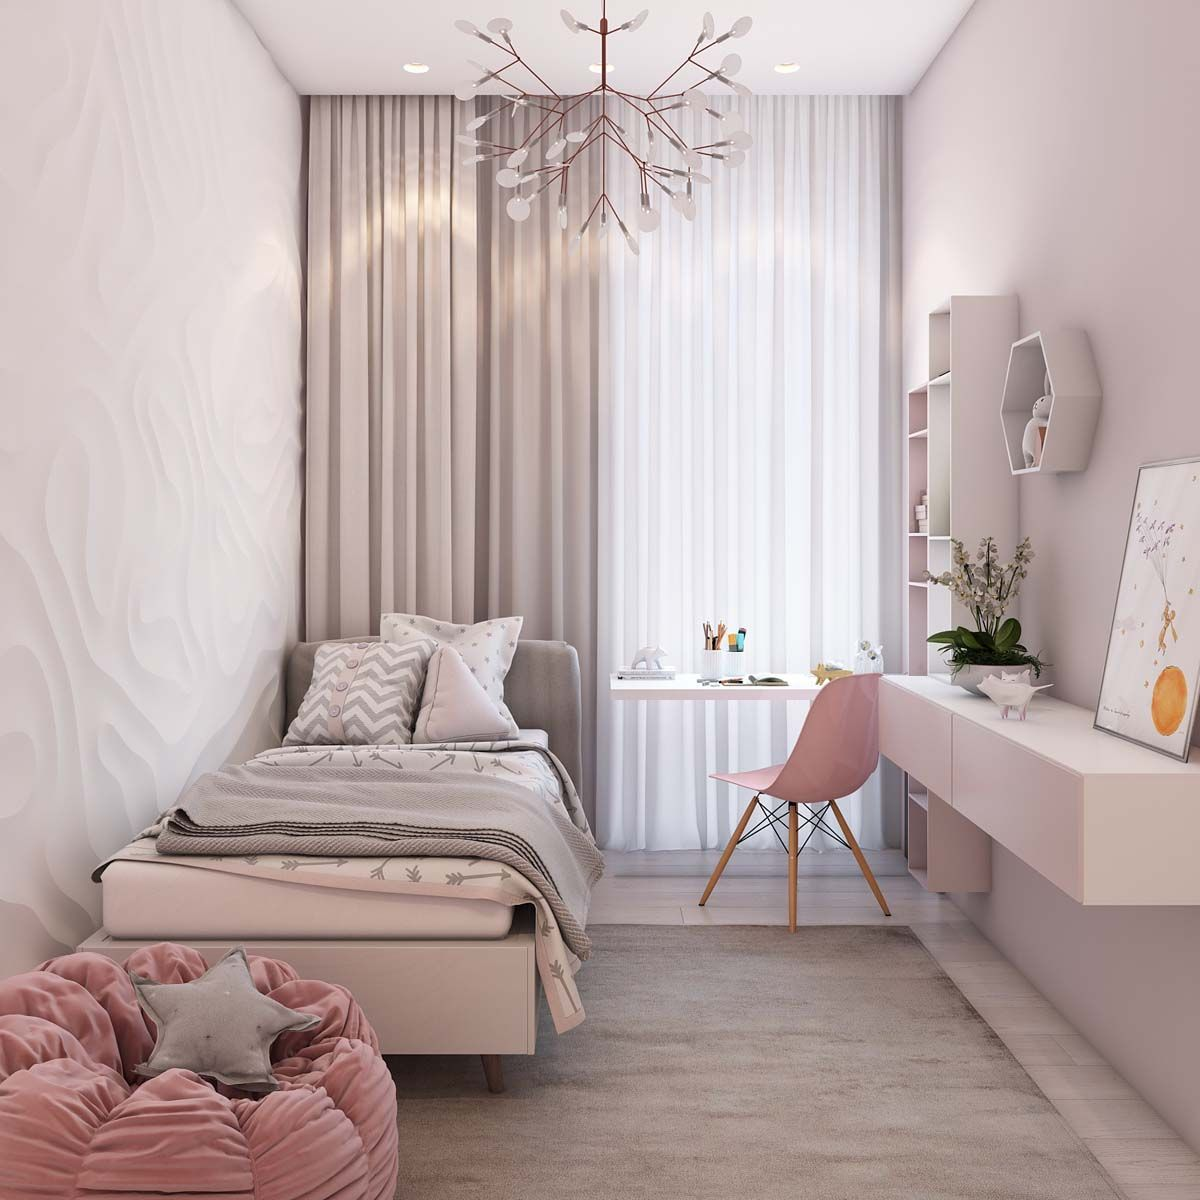 20 Best Small Modern Bedroom Ideas: #decoracionhabitacionjuveniles